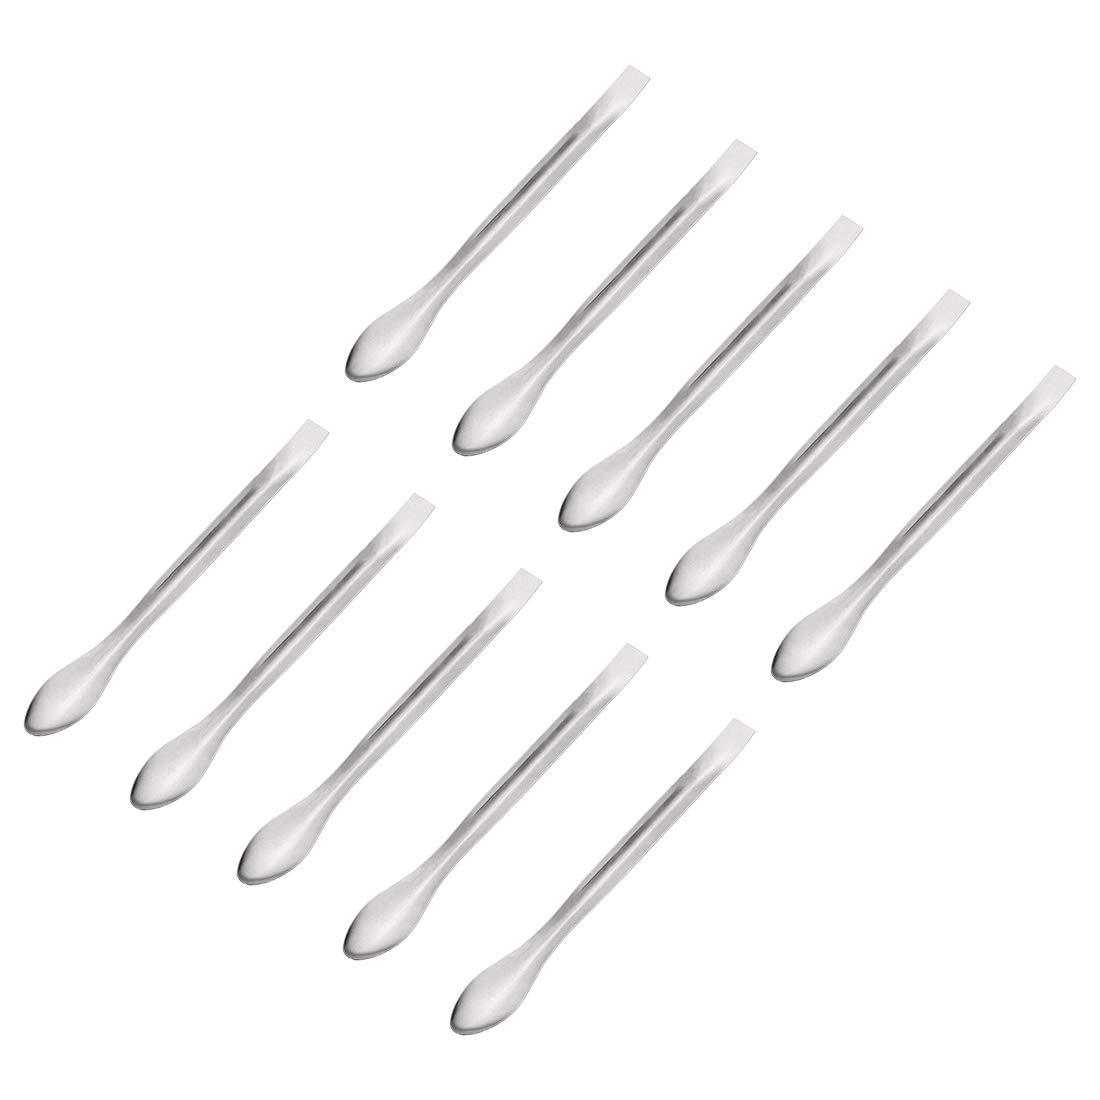 uxcell Silver Tone Micro Scoop 140mm Stainless Steel Reagent Sampling Spoon Lab Spatulas for Laboratory 10Pcs